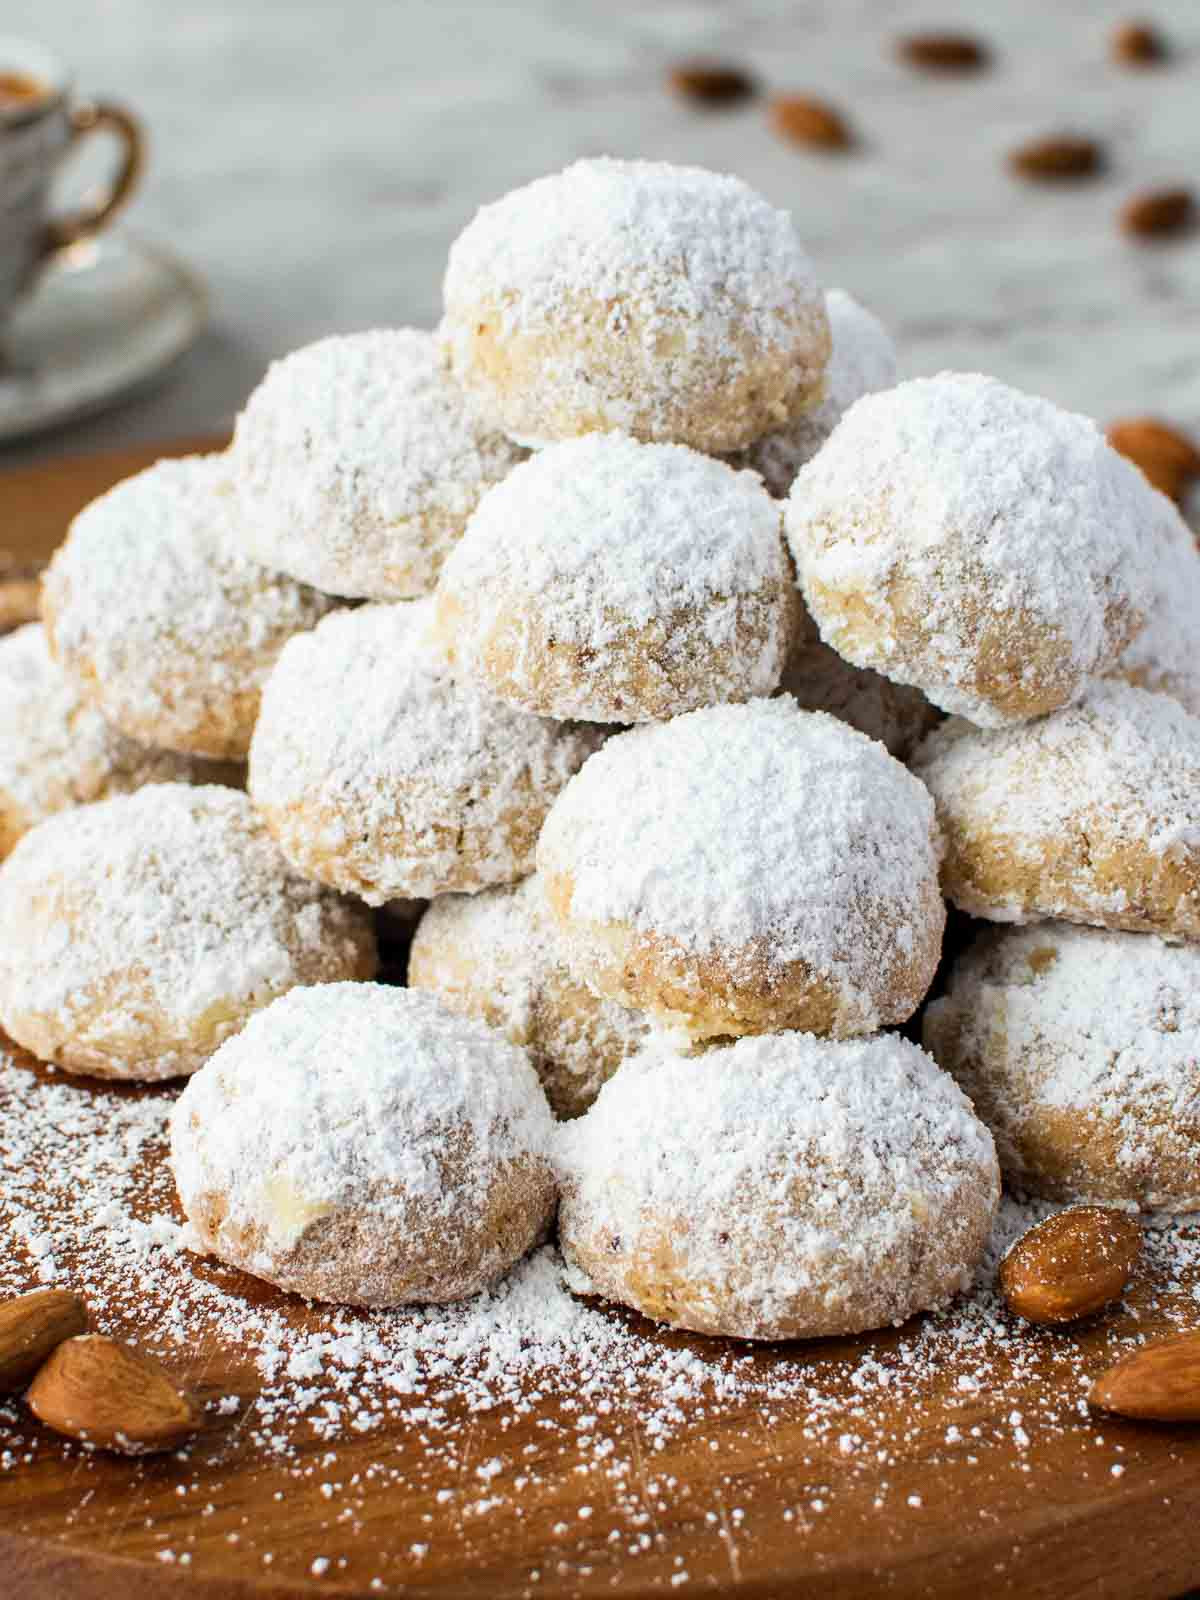 pile of white sugar coated cookies on wooden board.